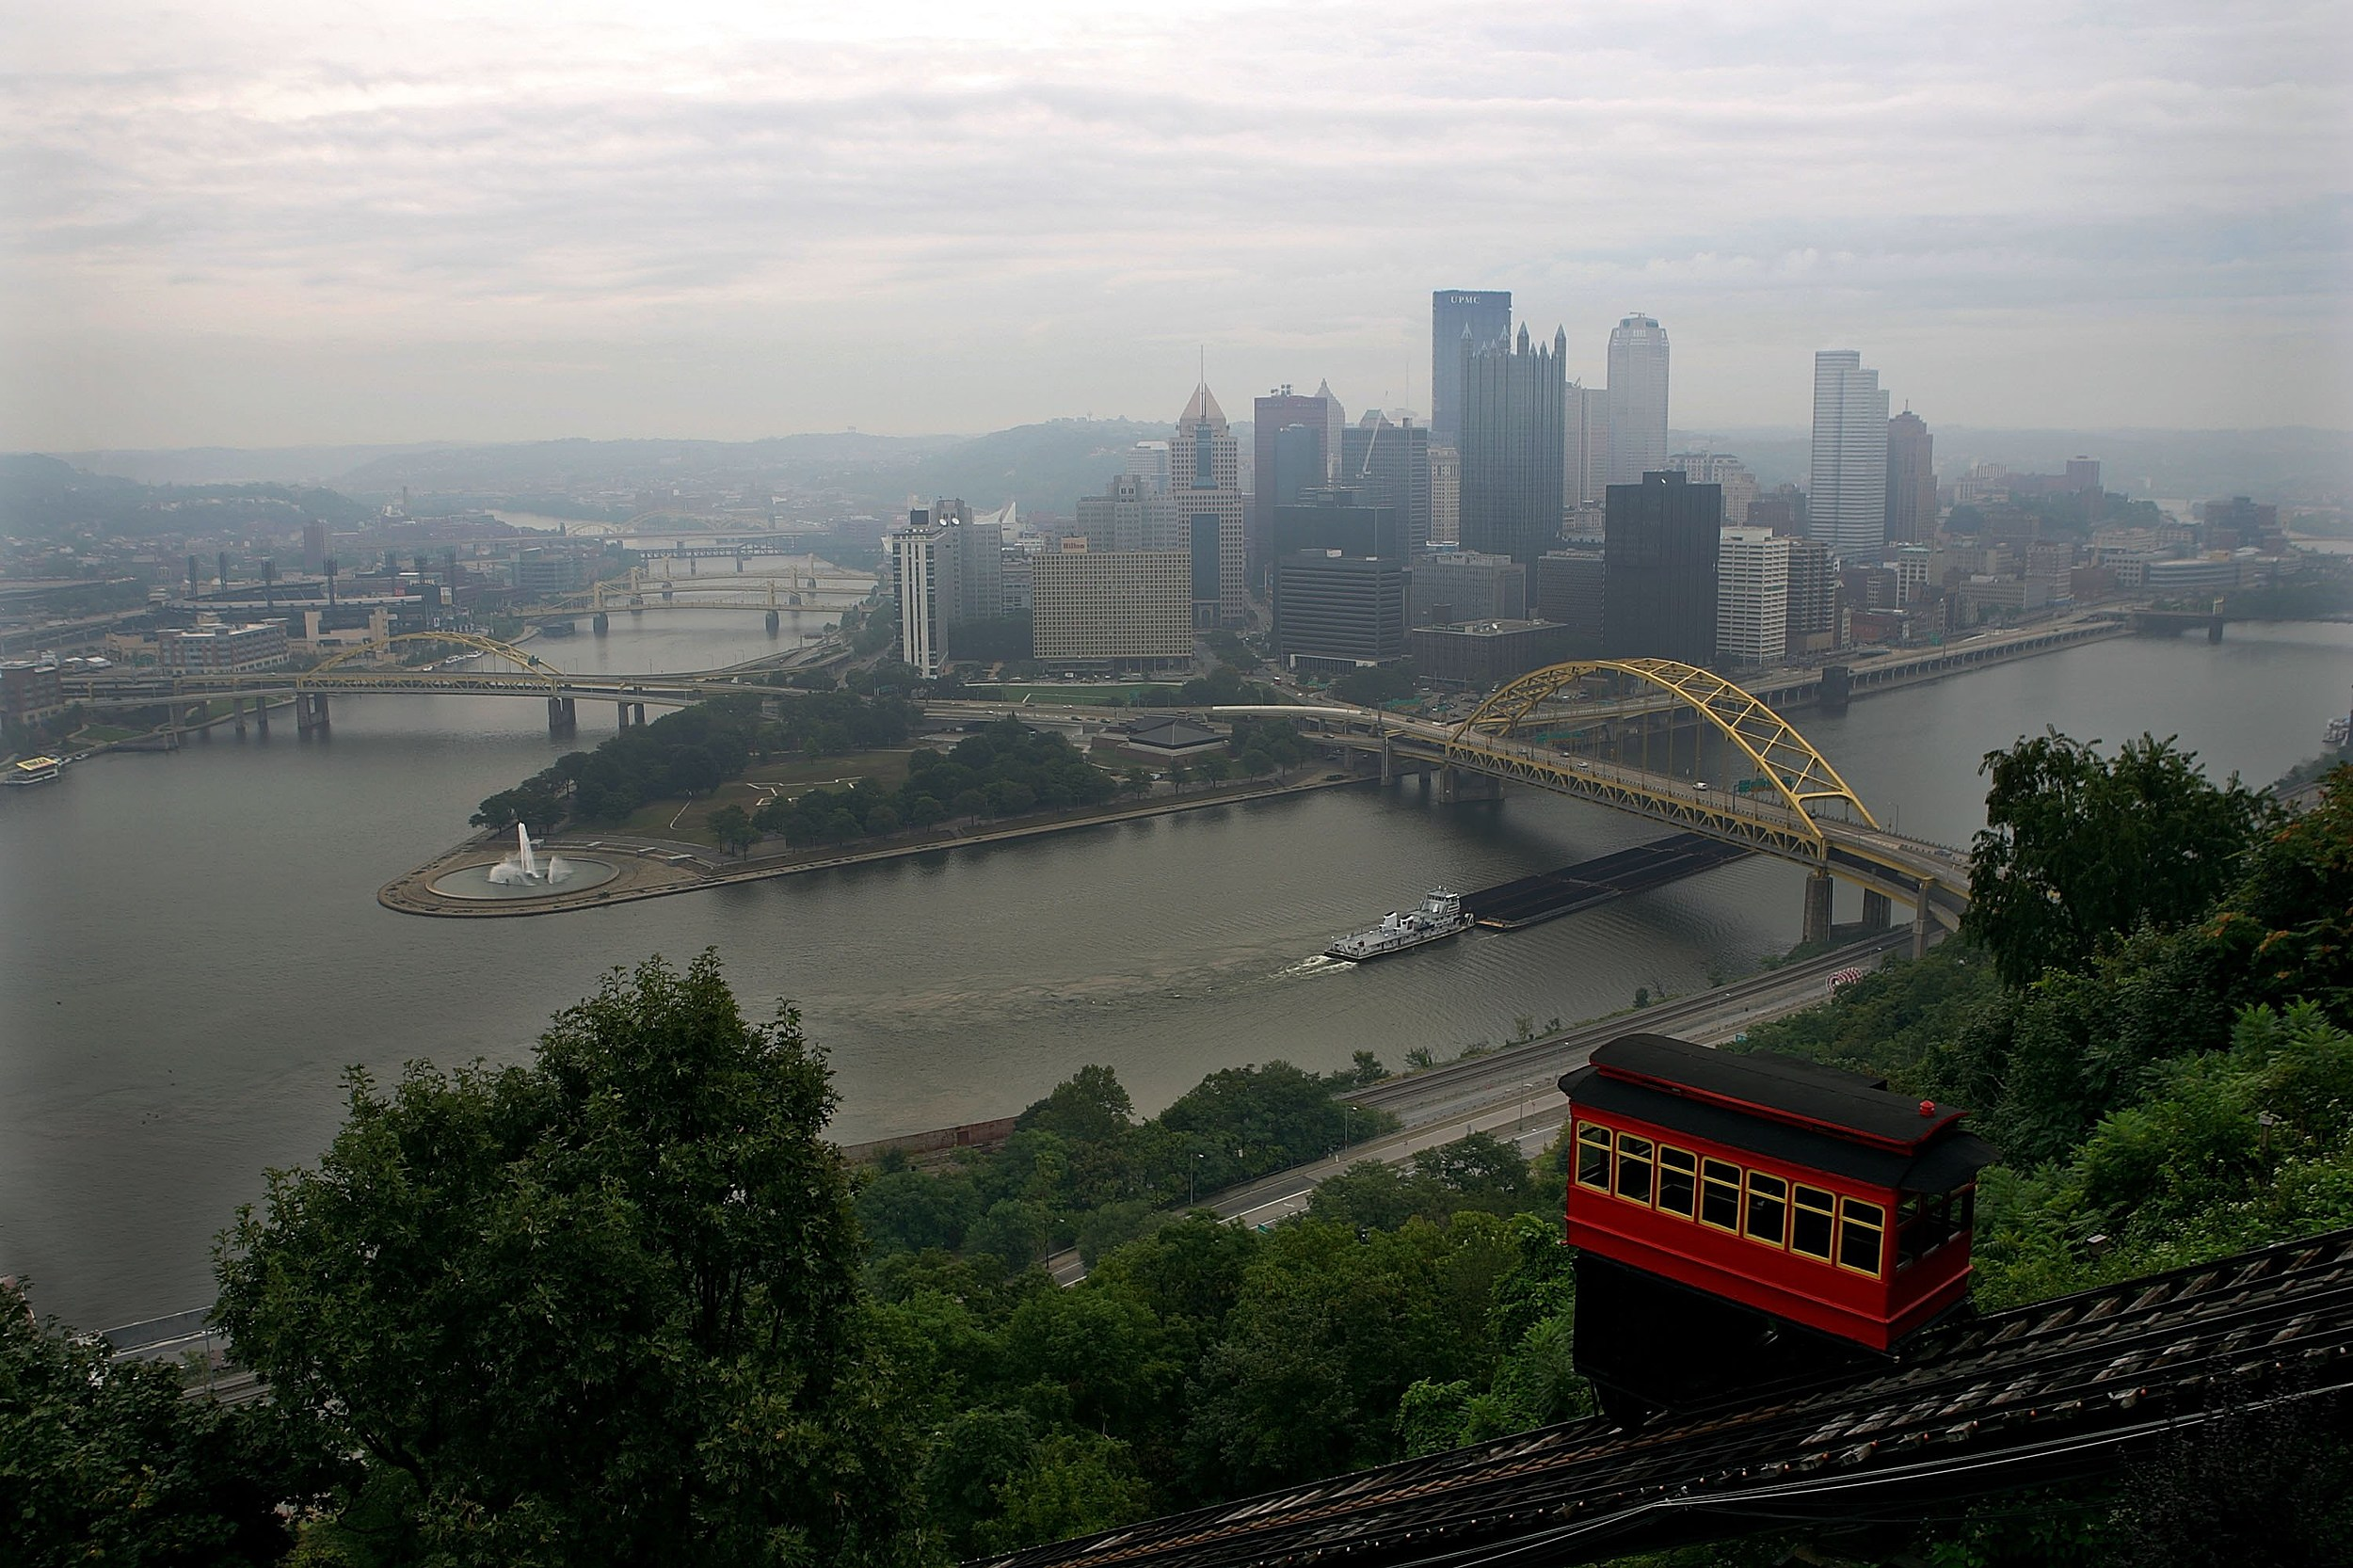 Pittsburgh: The Duquesne Incline